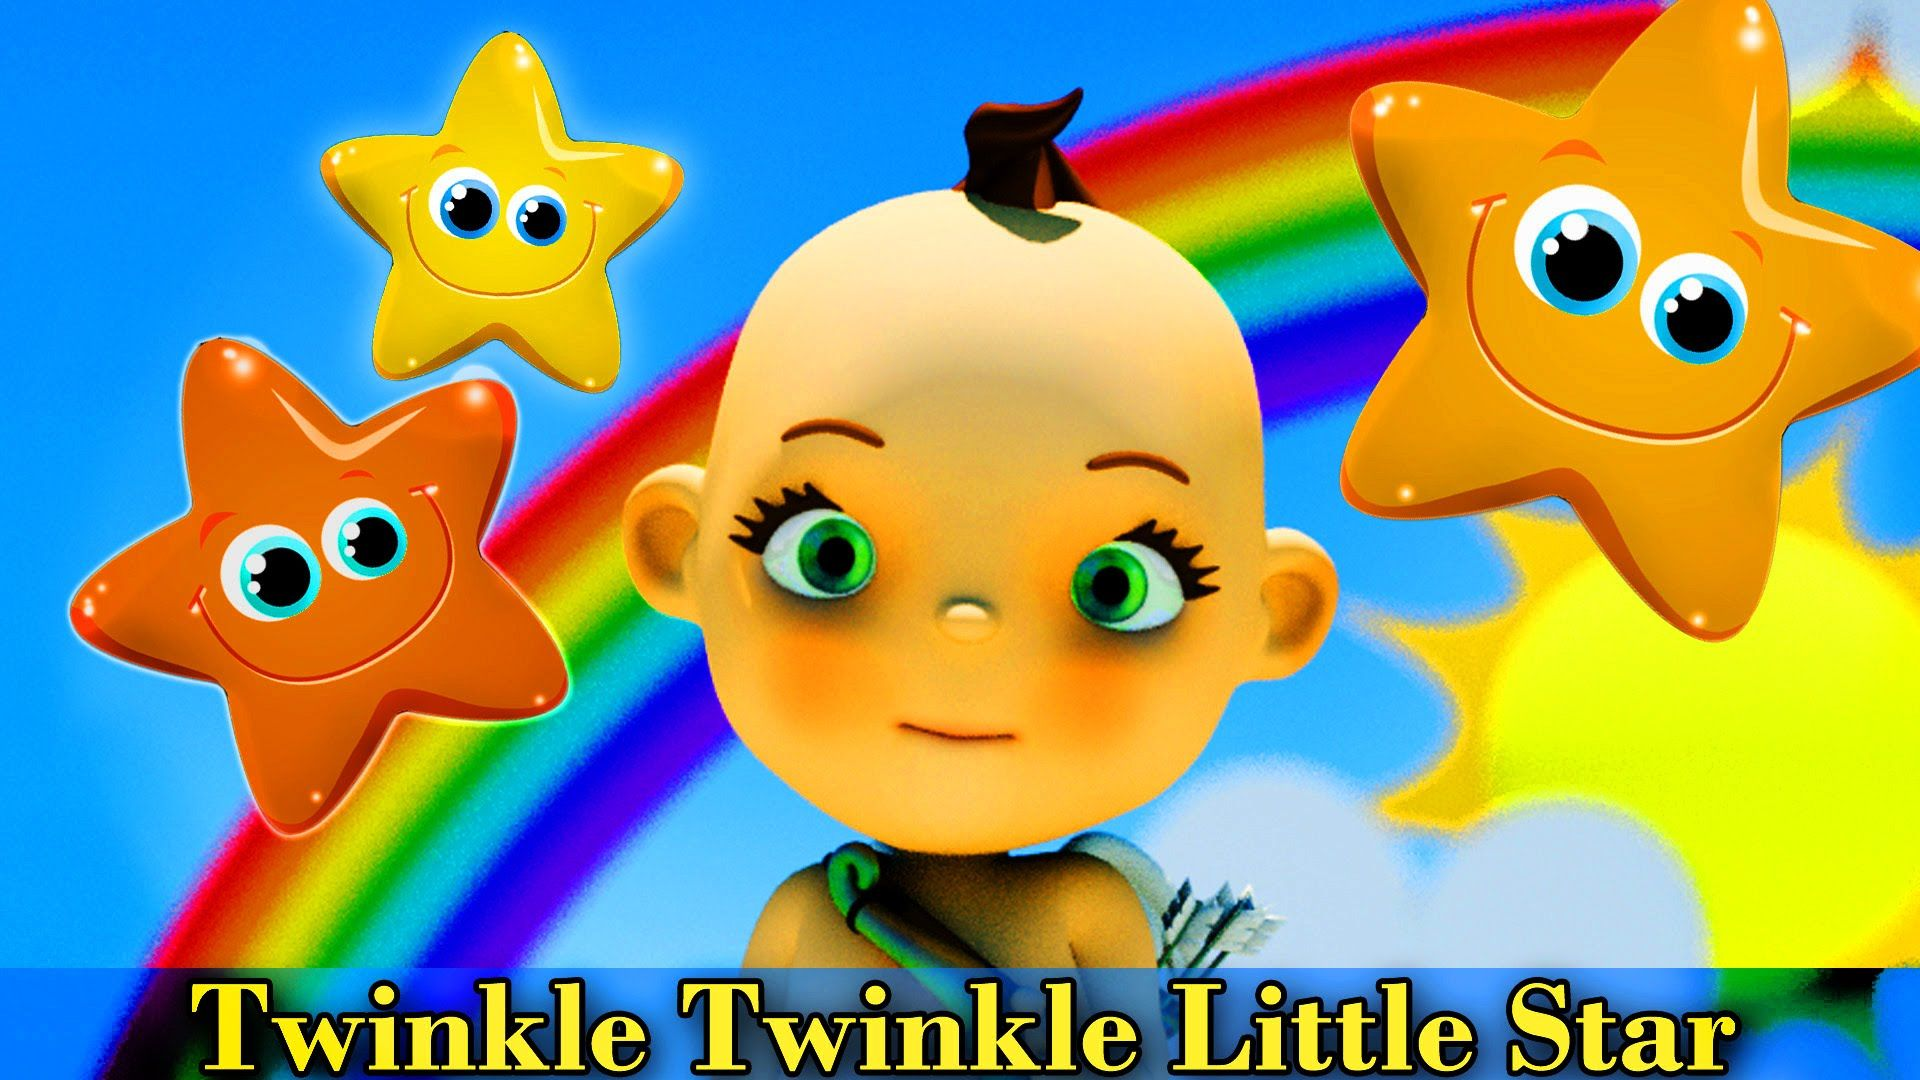 https://www.youtube.com/watch?v=sXtV7KjPH5c Watch the Baby Song Twinkle Twinkle Little Star. 3D Animation of Dancing Baby Cupid dancing to Twinkle Twinkle Baby Song is the cutest ever!